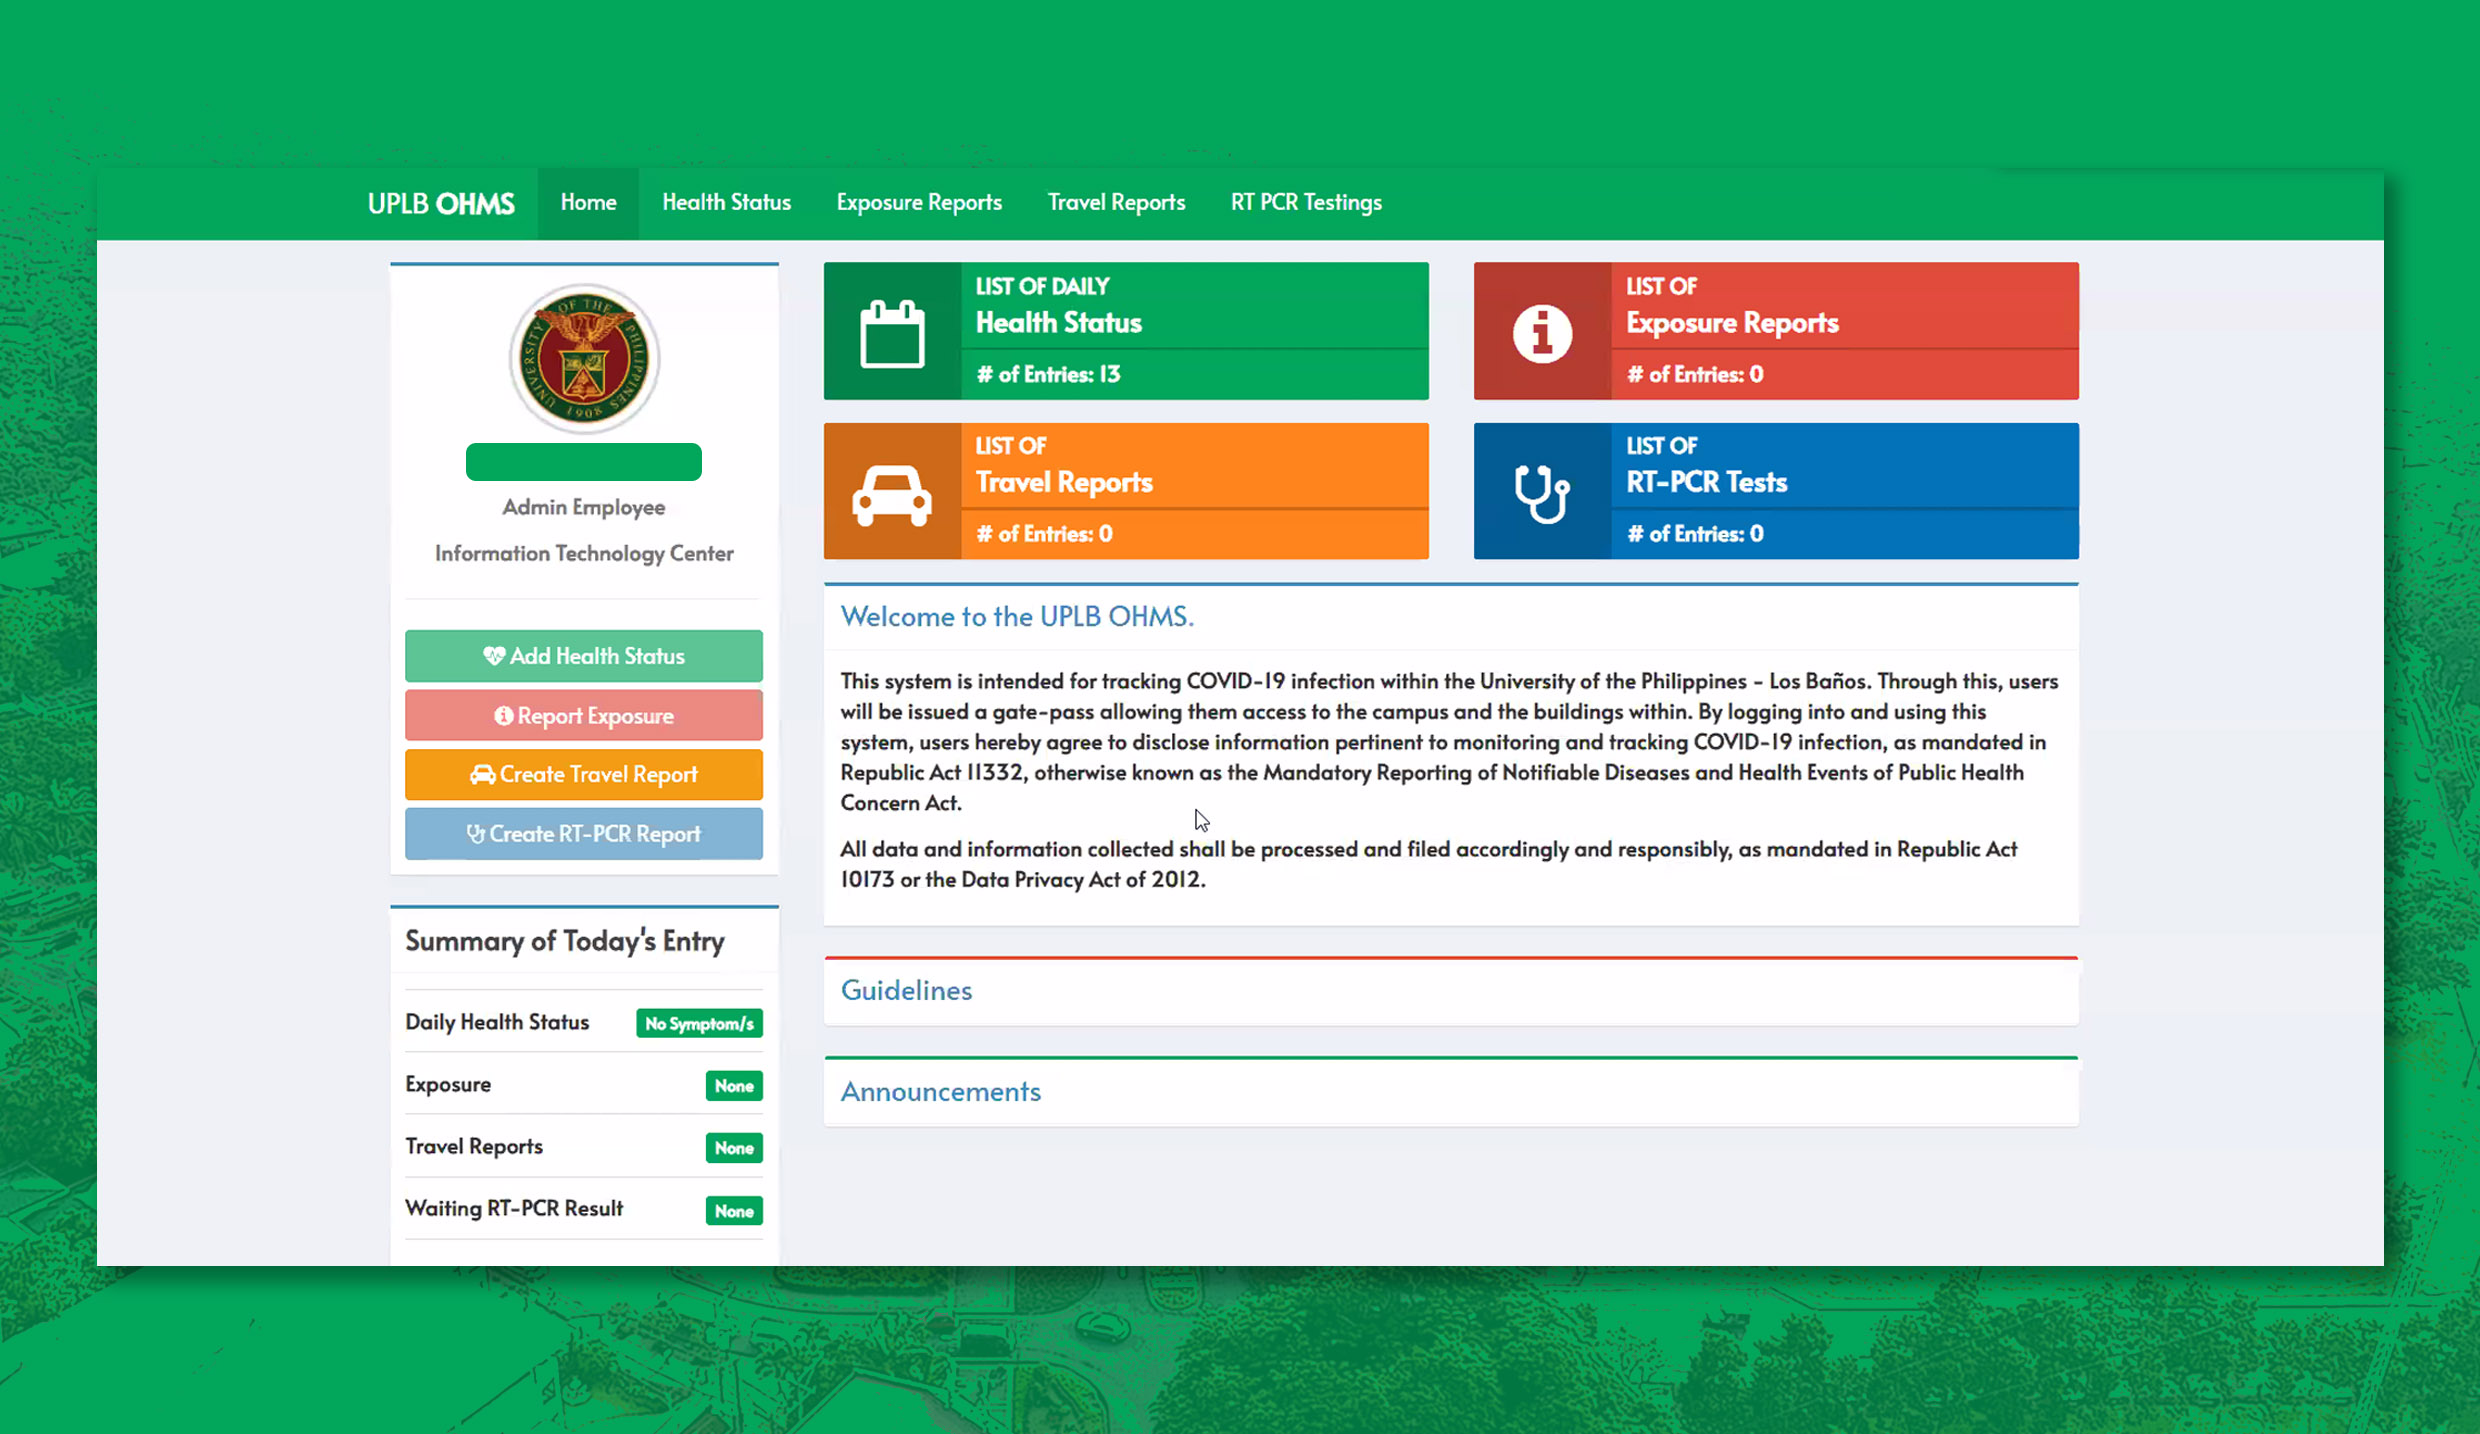 UPLB implements online health monitoring system